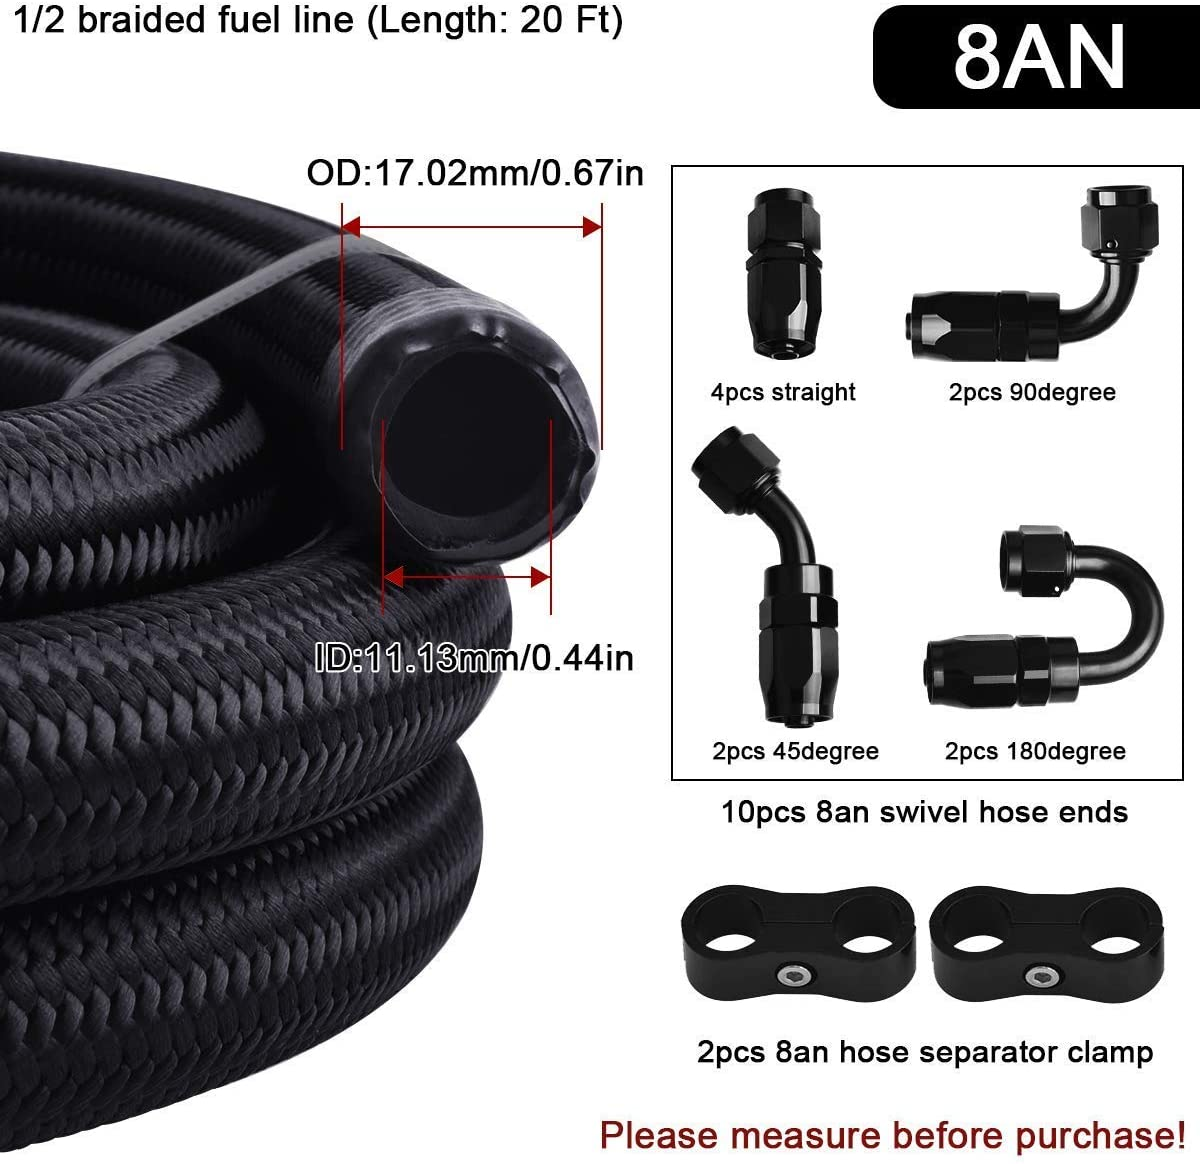 EVIL ENERGY 20FT 8AN Nylon Braided CPE Fuel Line Fitting Kit Bundle with 4pcs//Pack Fuel Hose Separator Clamp